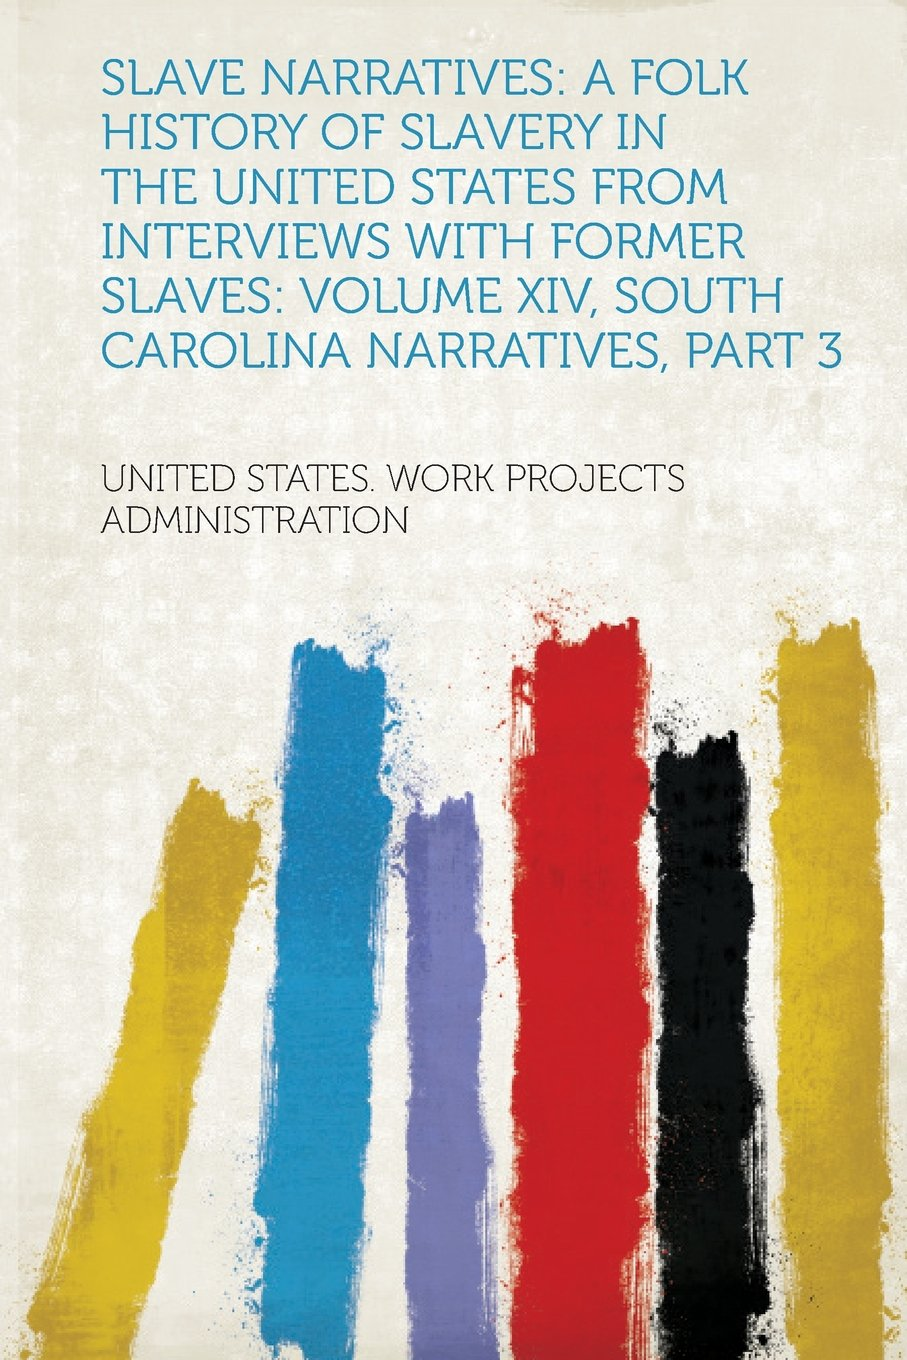 Download Slave Narratives: A Folk History of Slavery in the United States From Interviews with Former Slaves: Volume XIV, South Carolina Narratives, Part 3 pdf